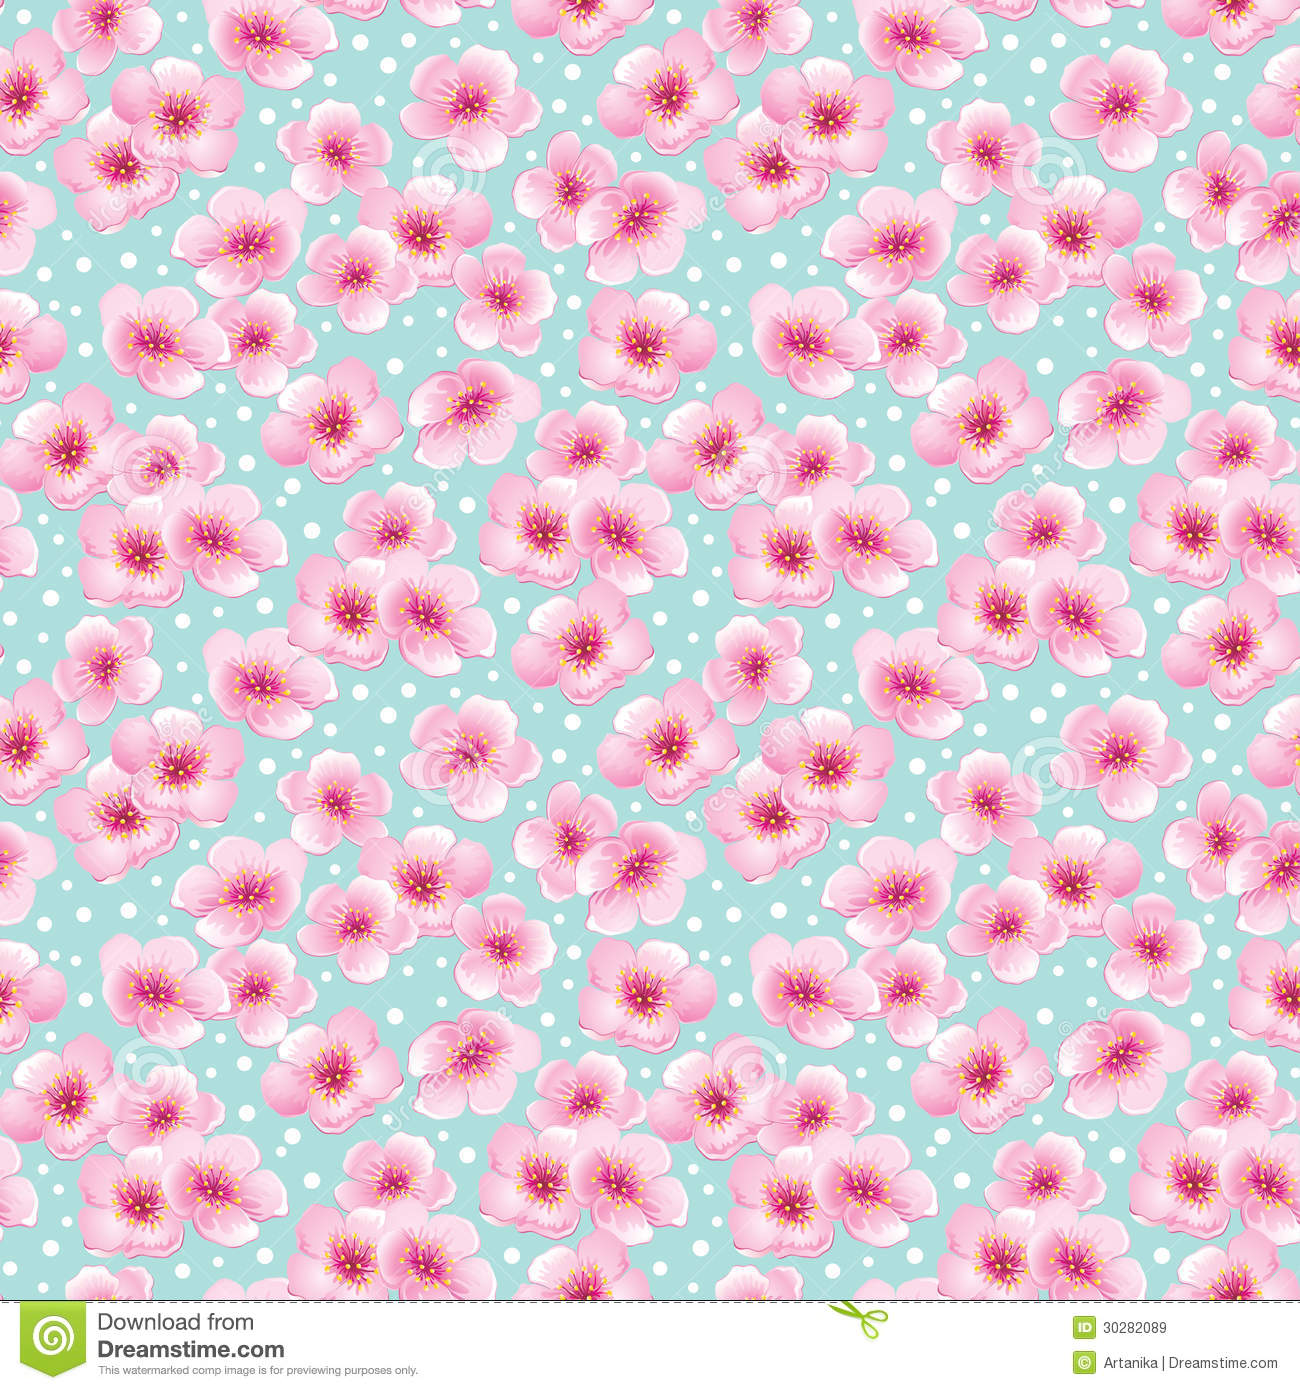 Muted Blue And Floral Red: Spring Seamless Pattern With Blossom Flowers Royalty Free